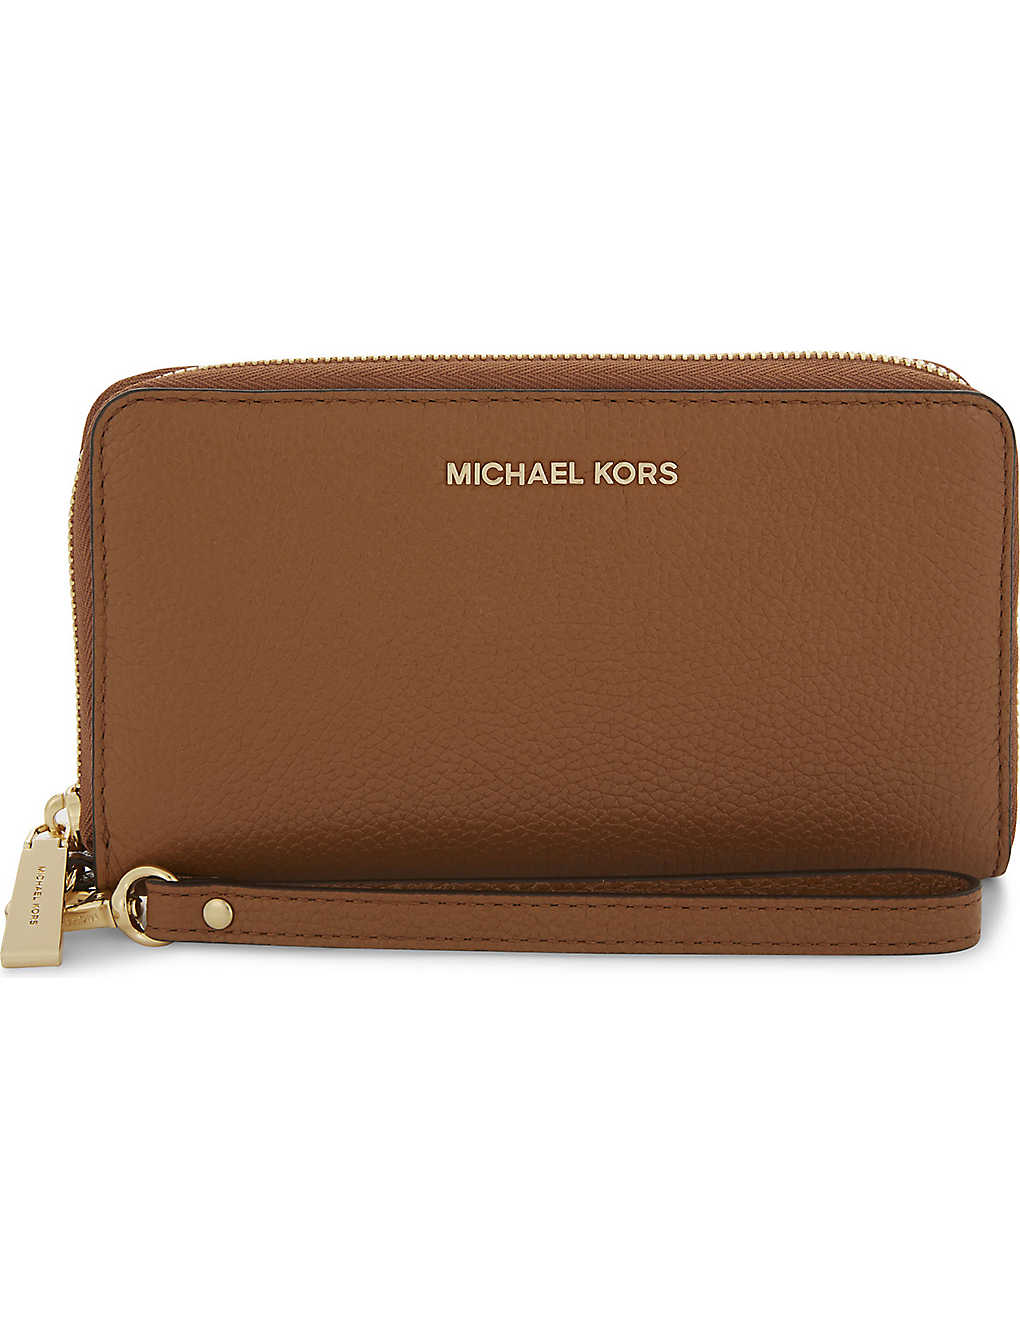 ff74772cc6d5 MICHAEL MICHAEL KORS Mercer large grained leather multi-function wallet